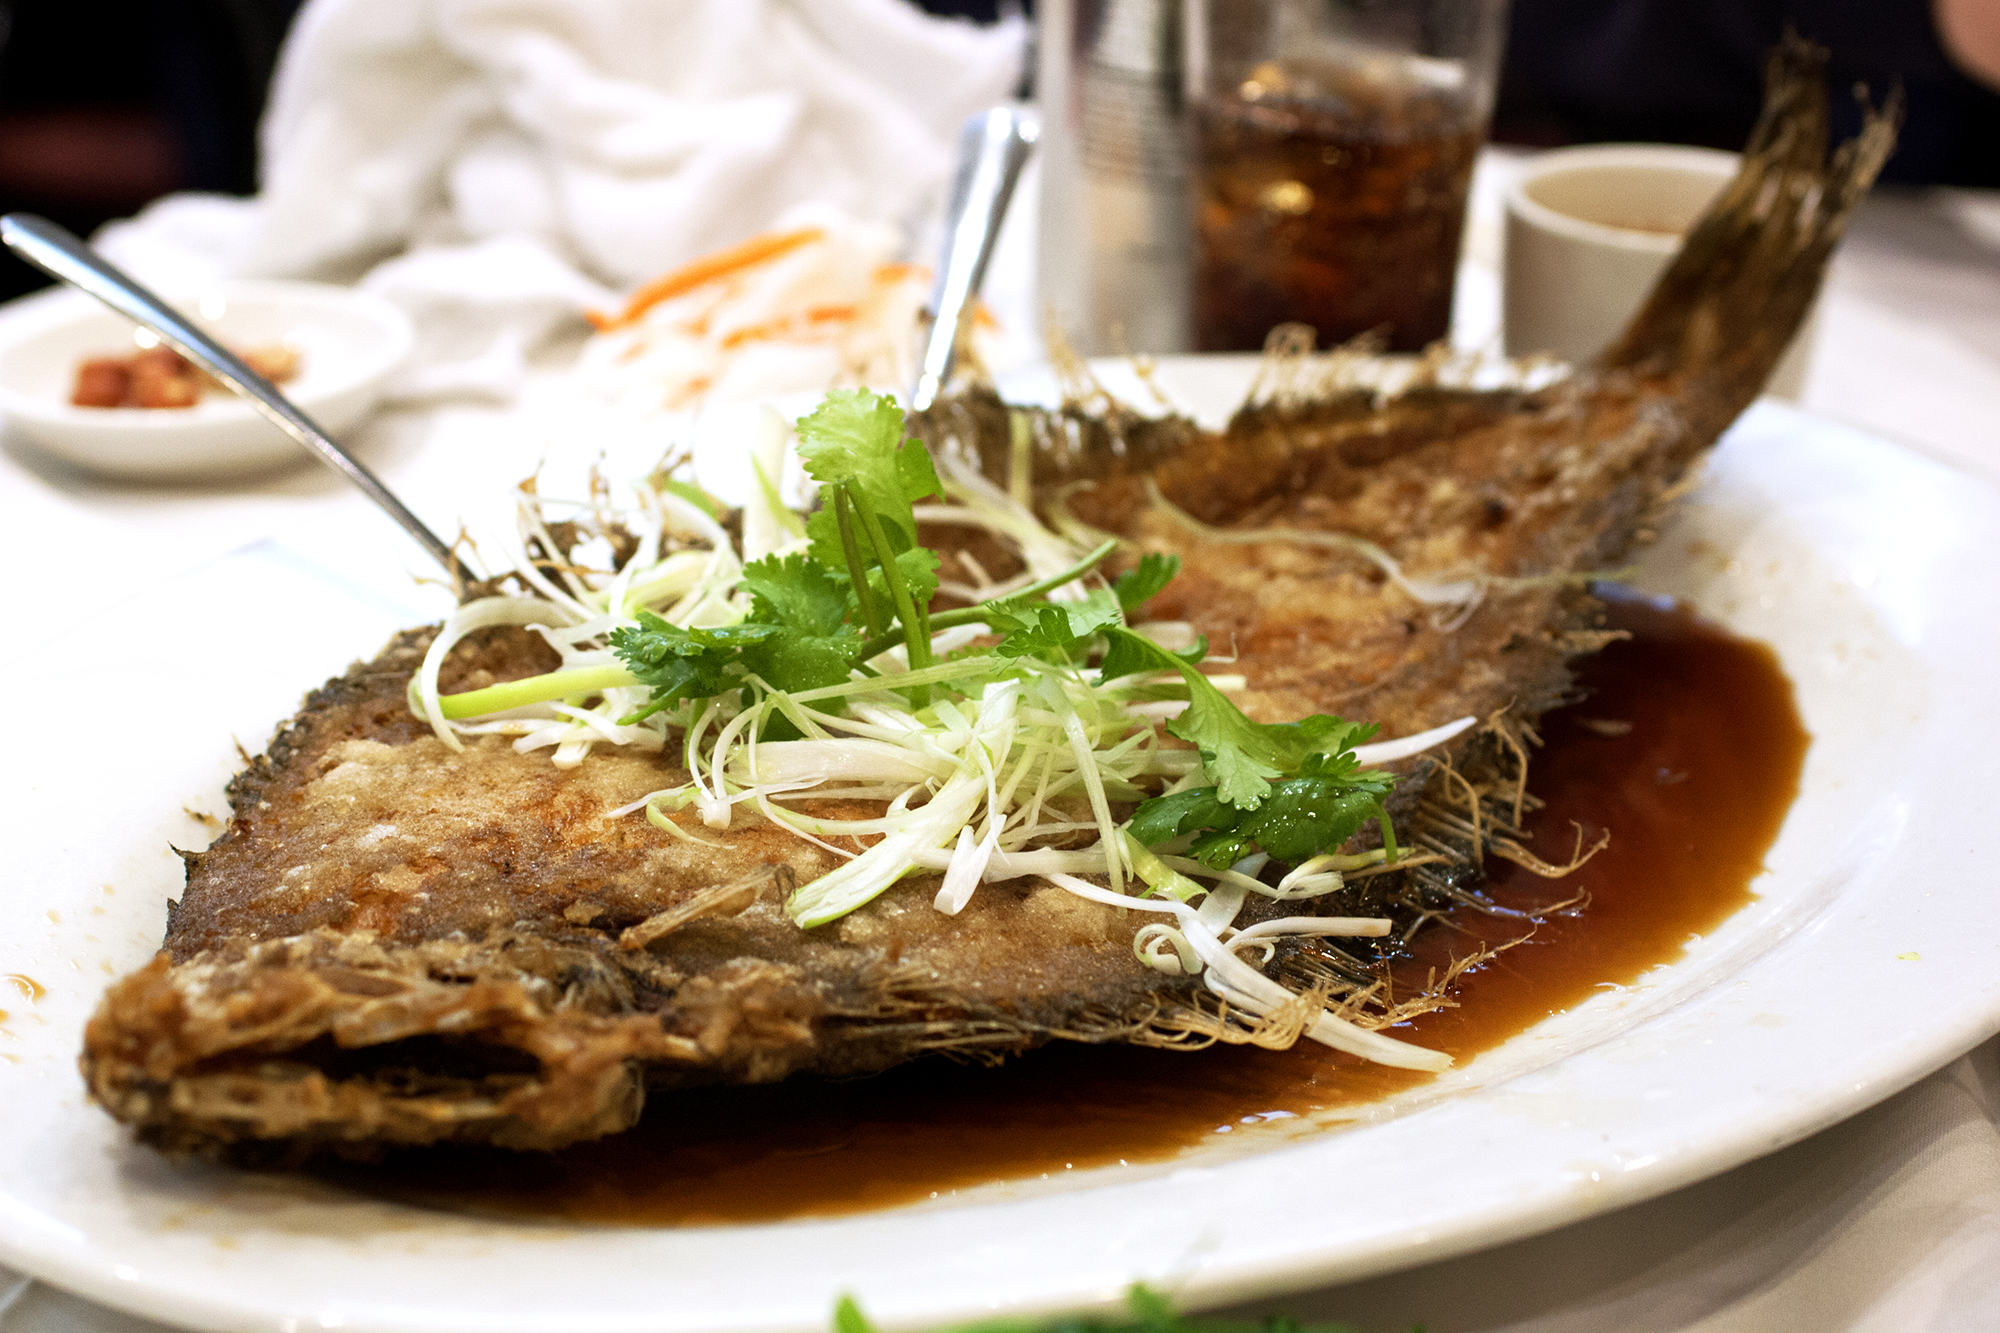 fried flounder with scallion and cilantro garnish and soy sauce